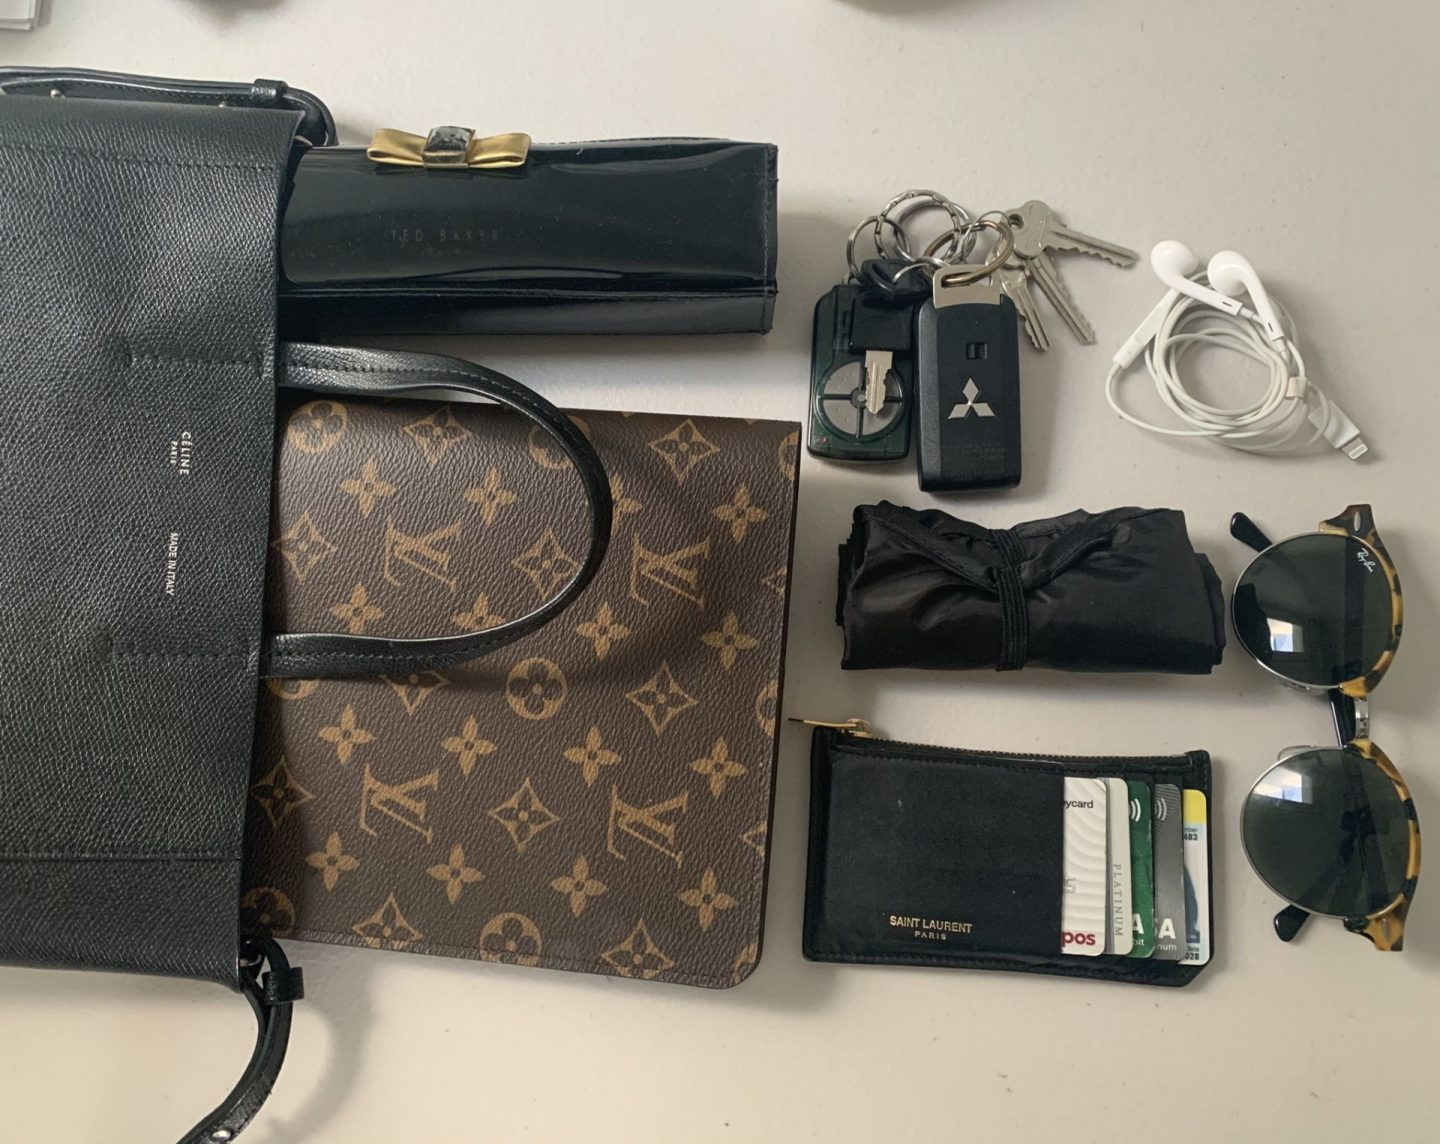 celine cabas tote review - what fits inside